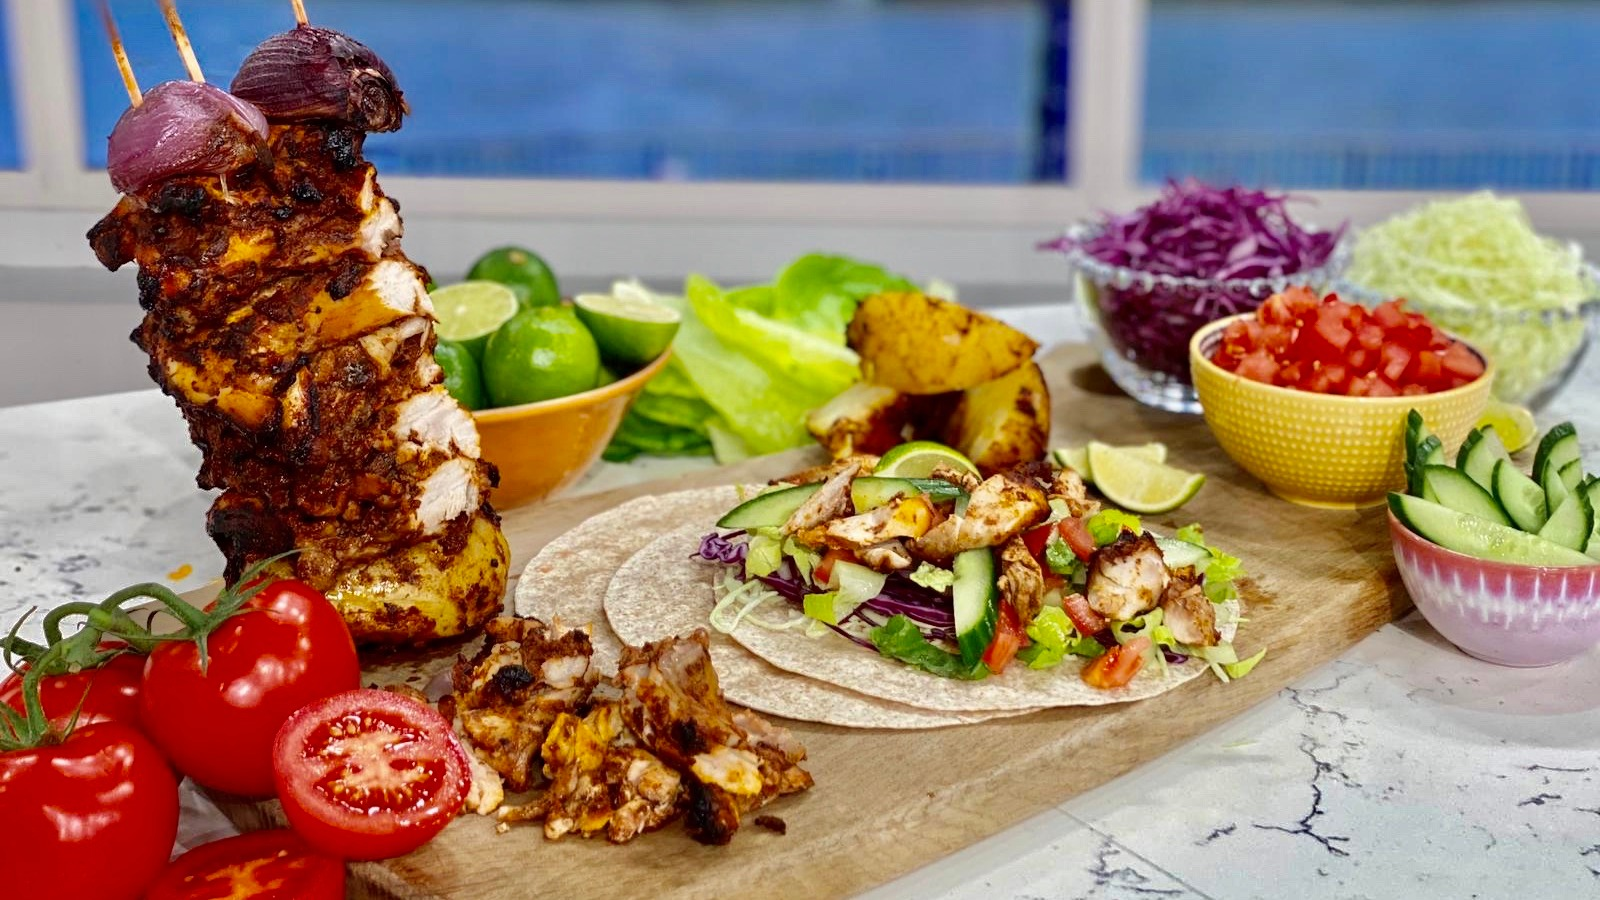 Alison's chicken kebabs | This Morning